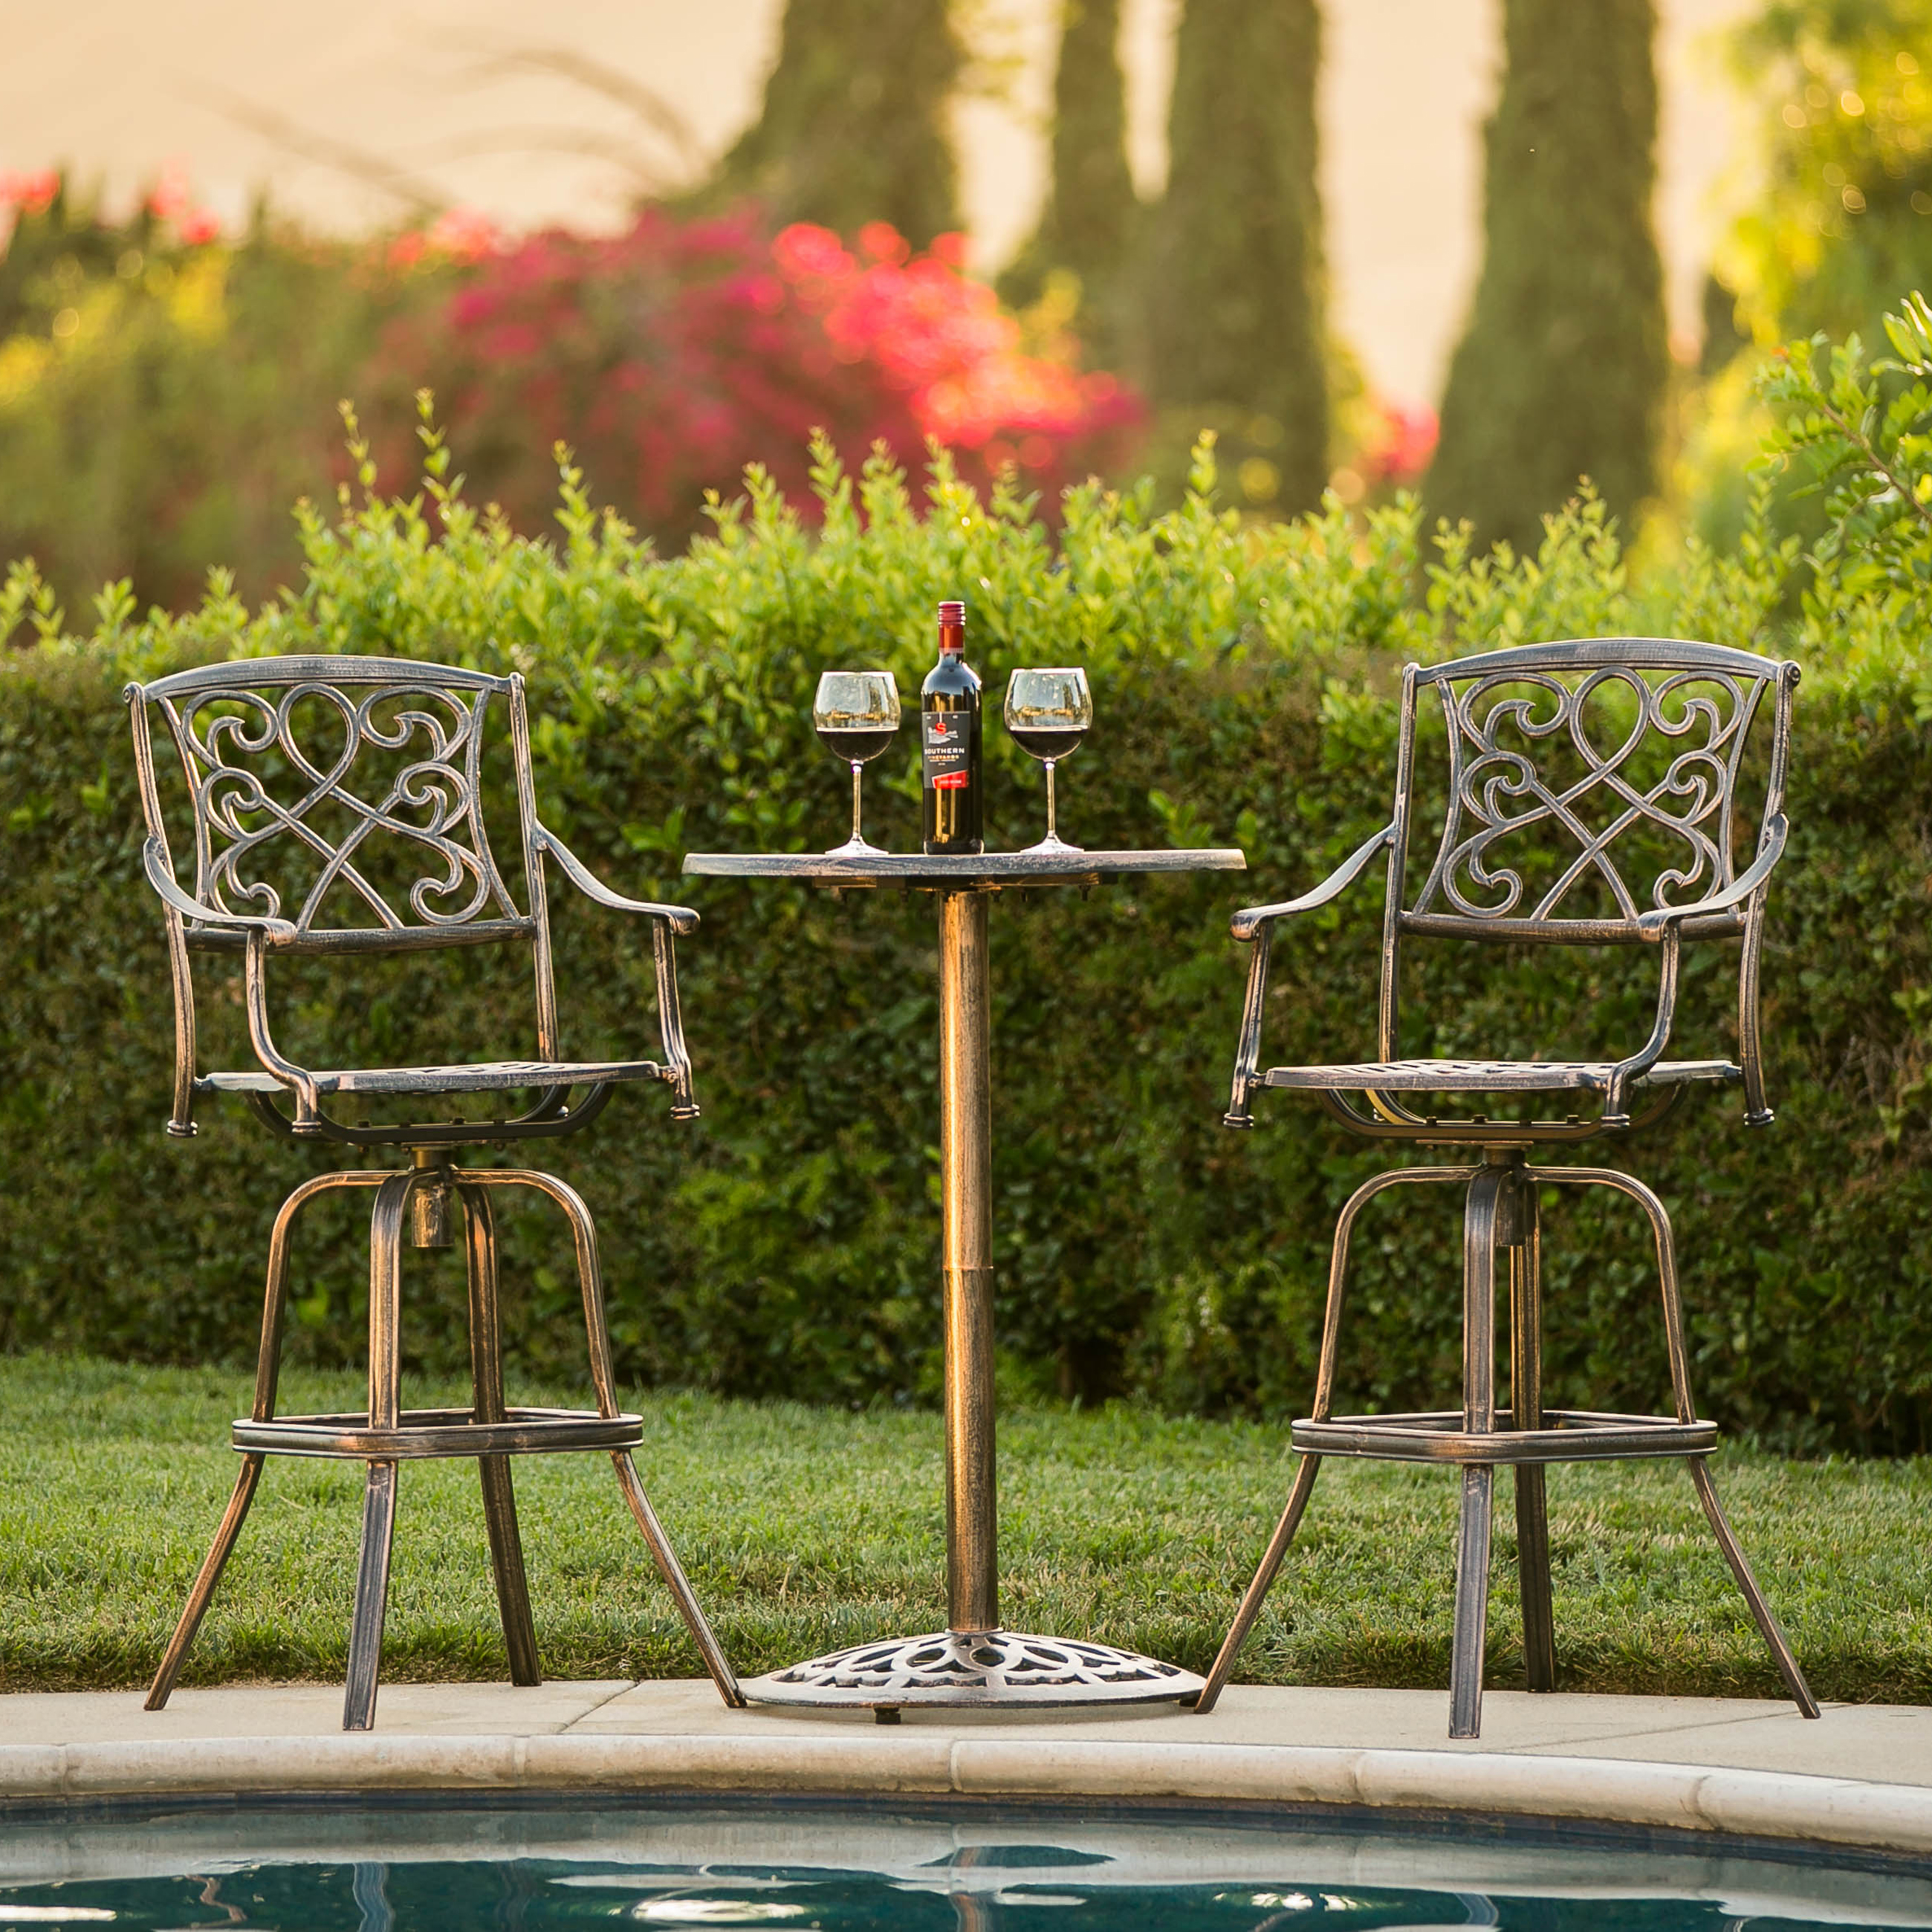 Best Choice Products 3-Piece Outdoor Cast Aluminum Bistro Set Accent Furniture for Patio, Porch, Garden  w/ 2 360-Swivel Chairs - Antique Copper